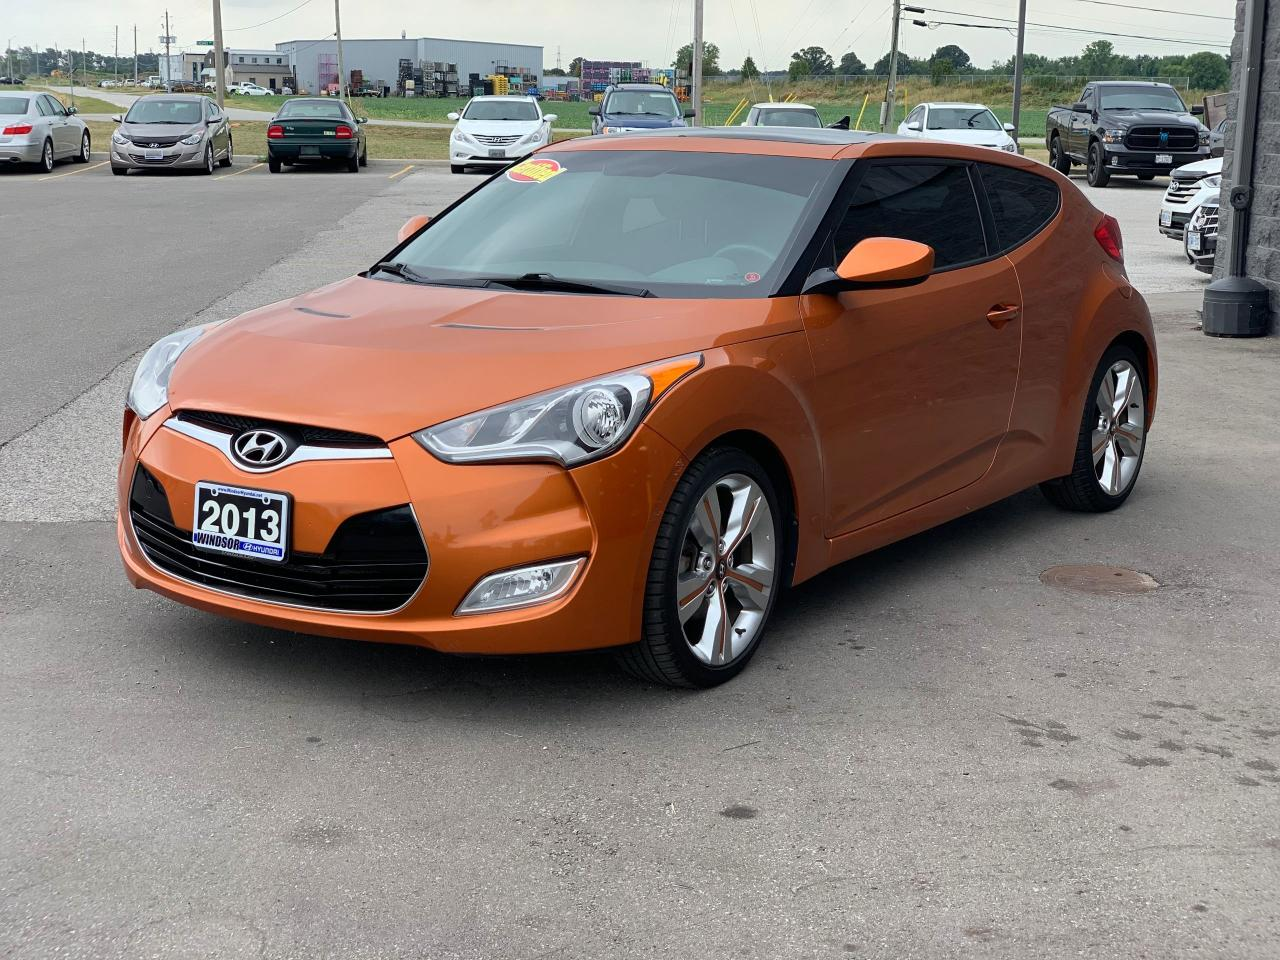 2013 Hyundai Veloster VELOSTER 3DR DCT 1.